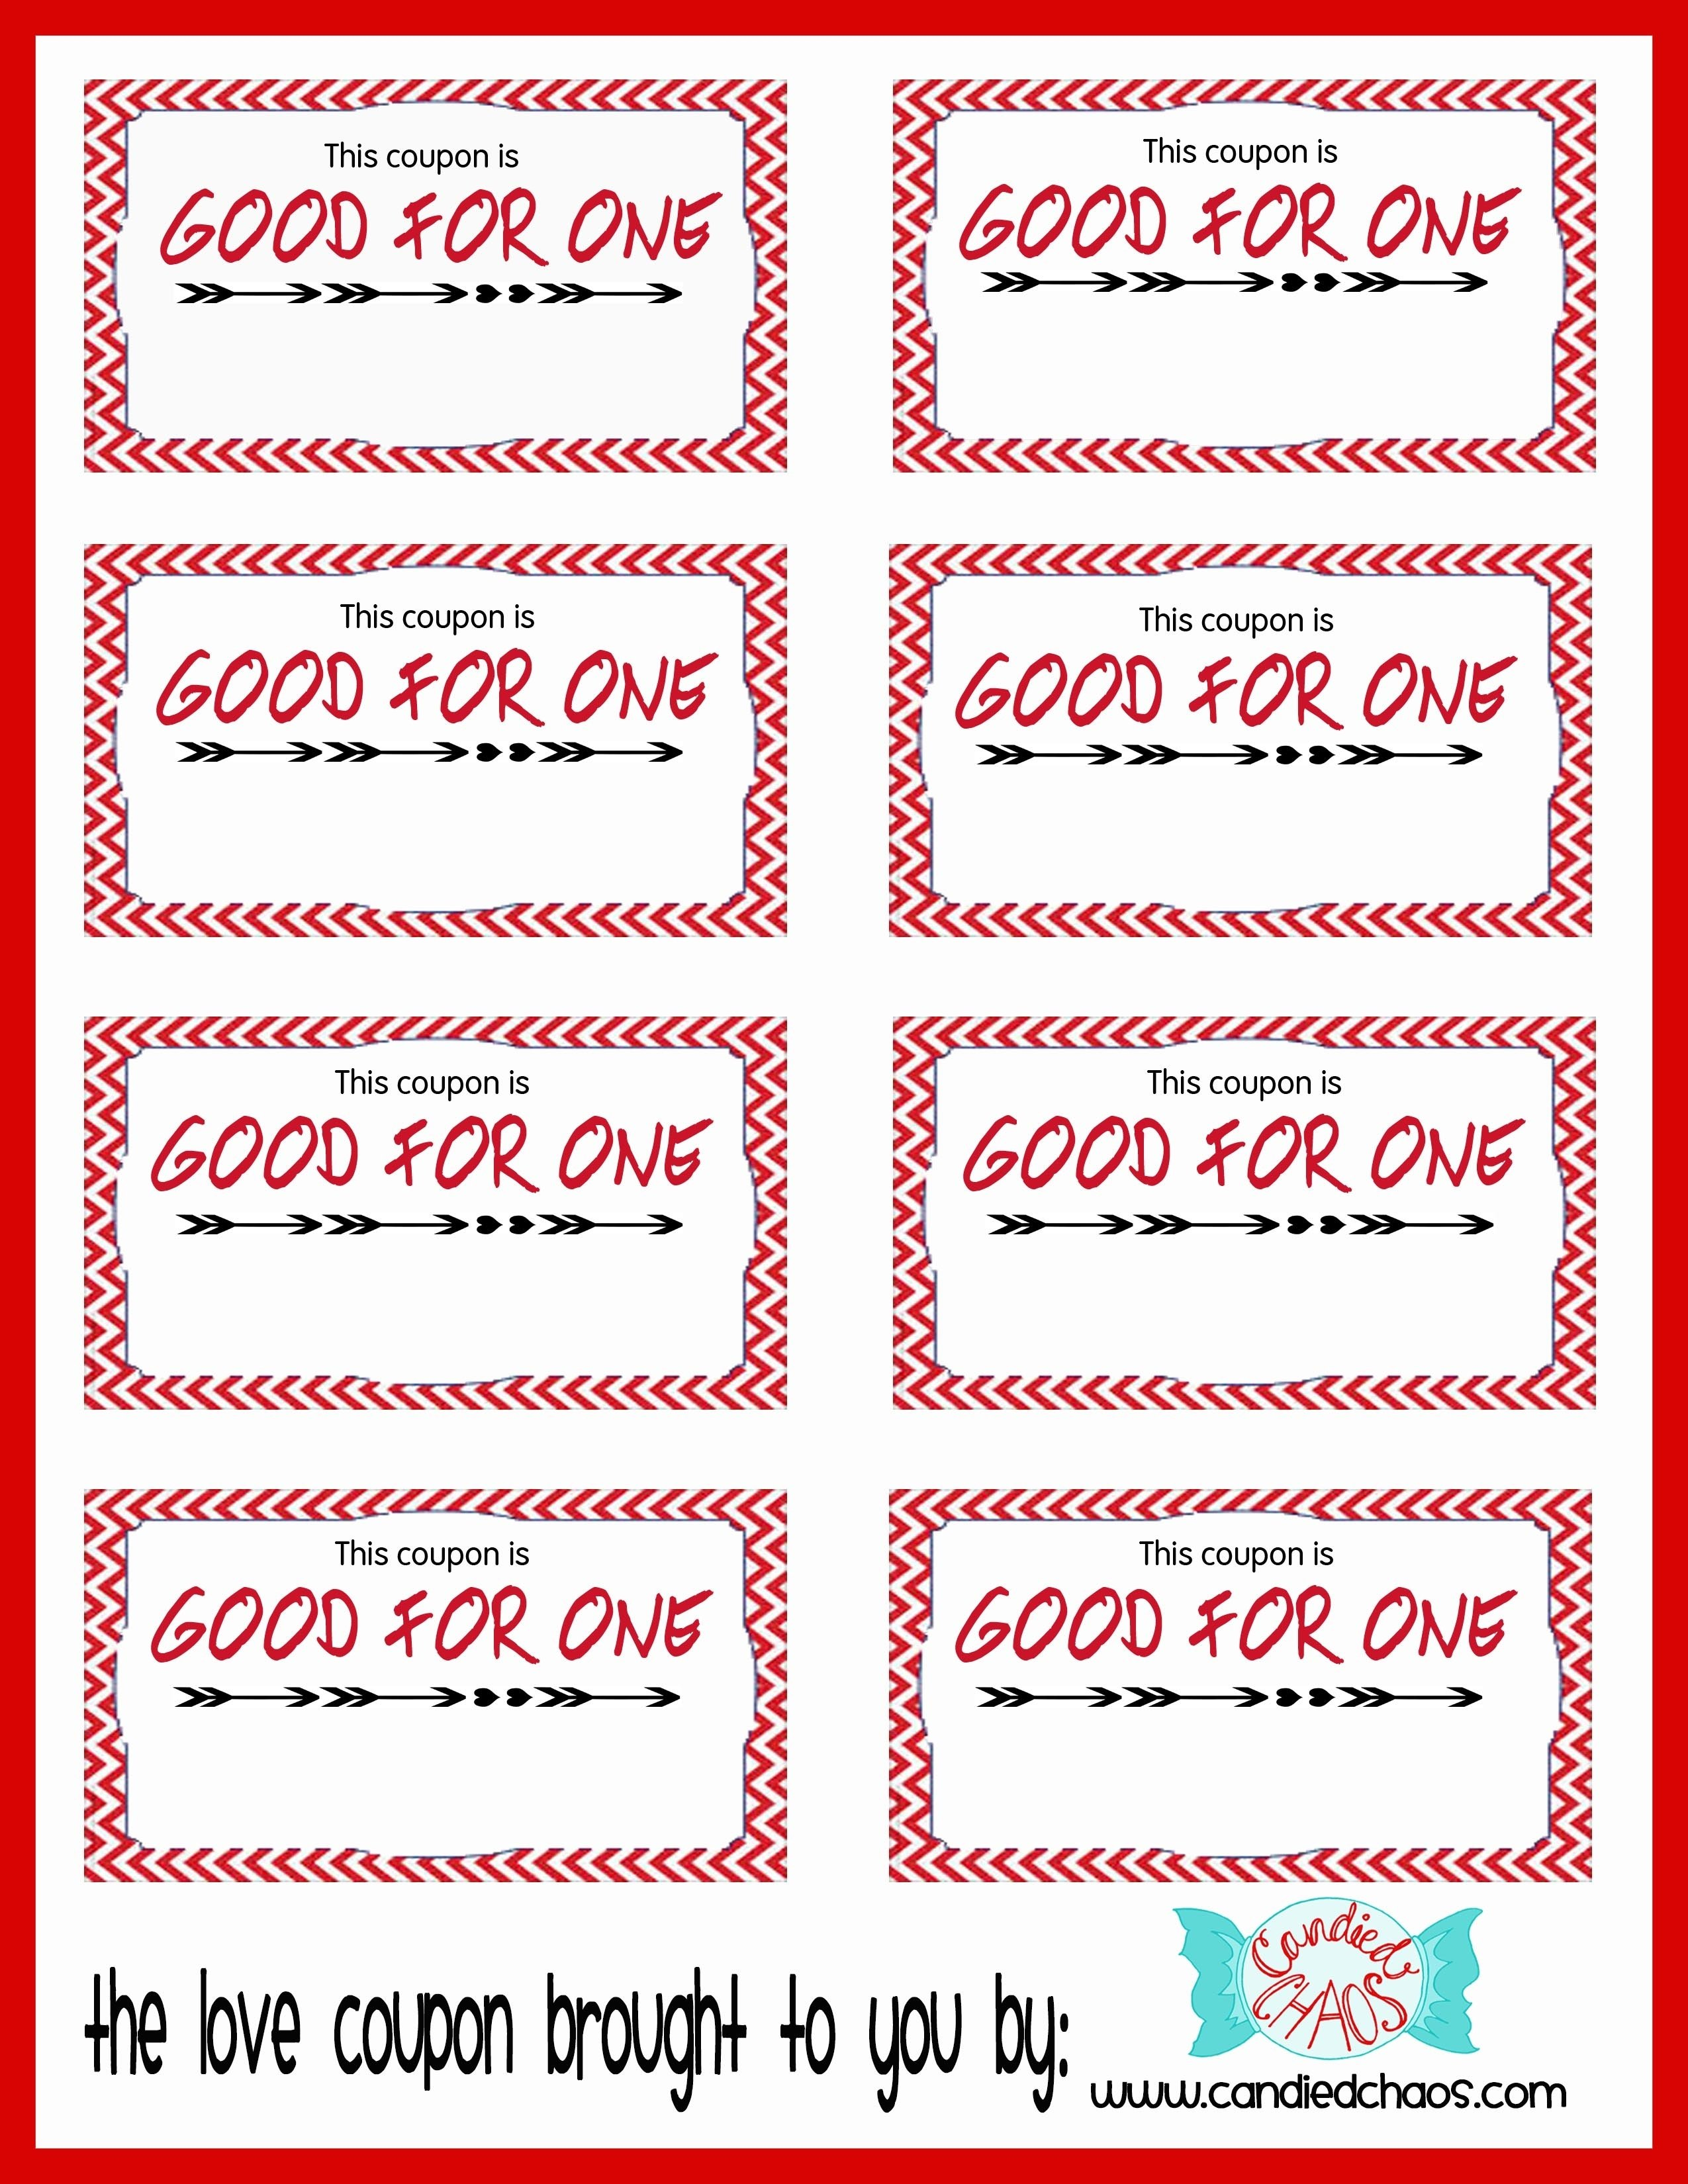 10 Attractive Valentine Coupon Book Ideas For Guys i will be honest valentines day isnt really a big thing in our 3